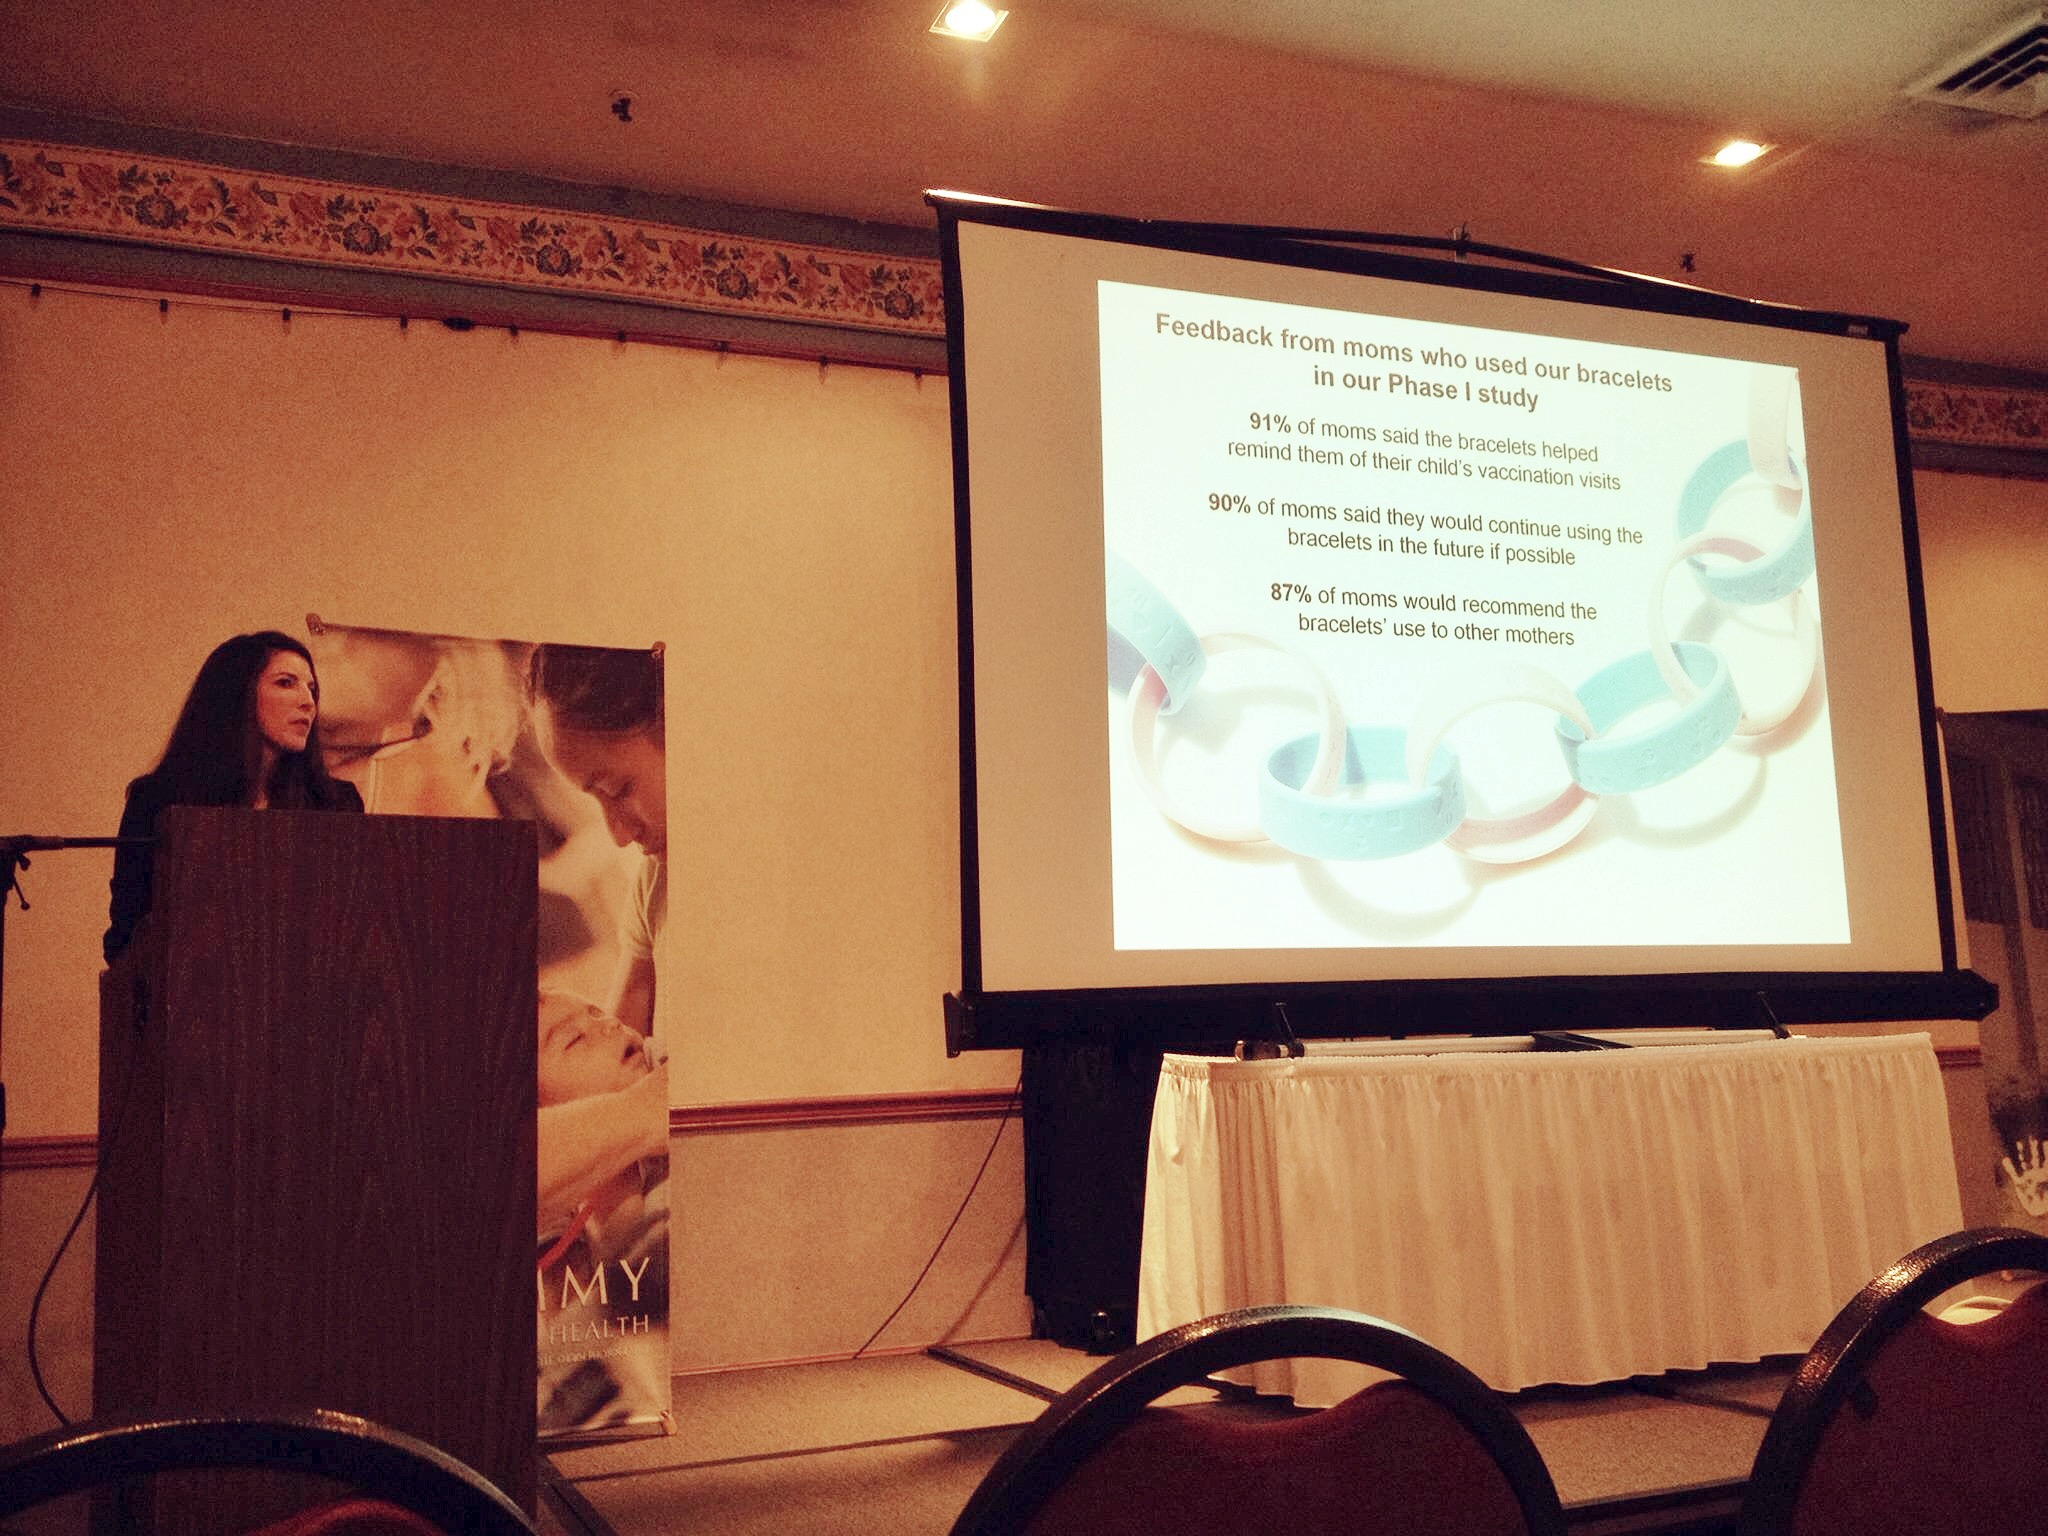 Over the weekend, our founder Lauren Braun gave the keynote speech at  #TimmyCon15  , the annual conference of   Timmy Global Health  , another Indianapolis-based global health NGO. Her message: You don't have to wait to start having an impact on global health. Photo taken: September 14, 2015.